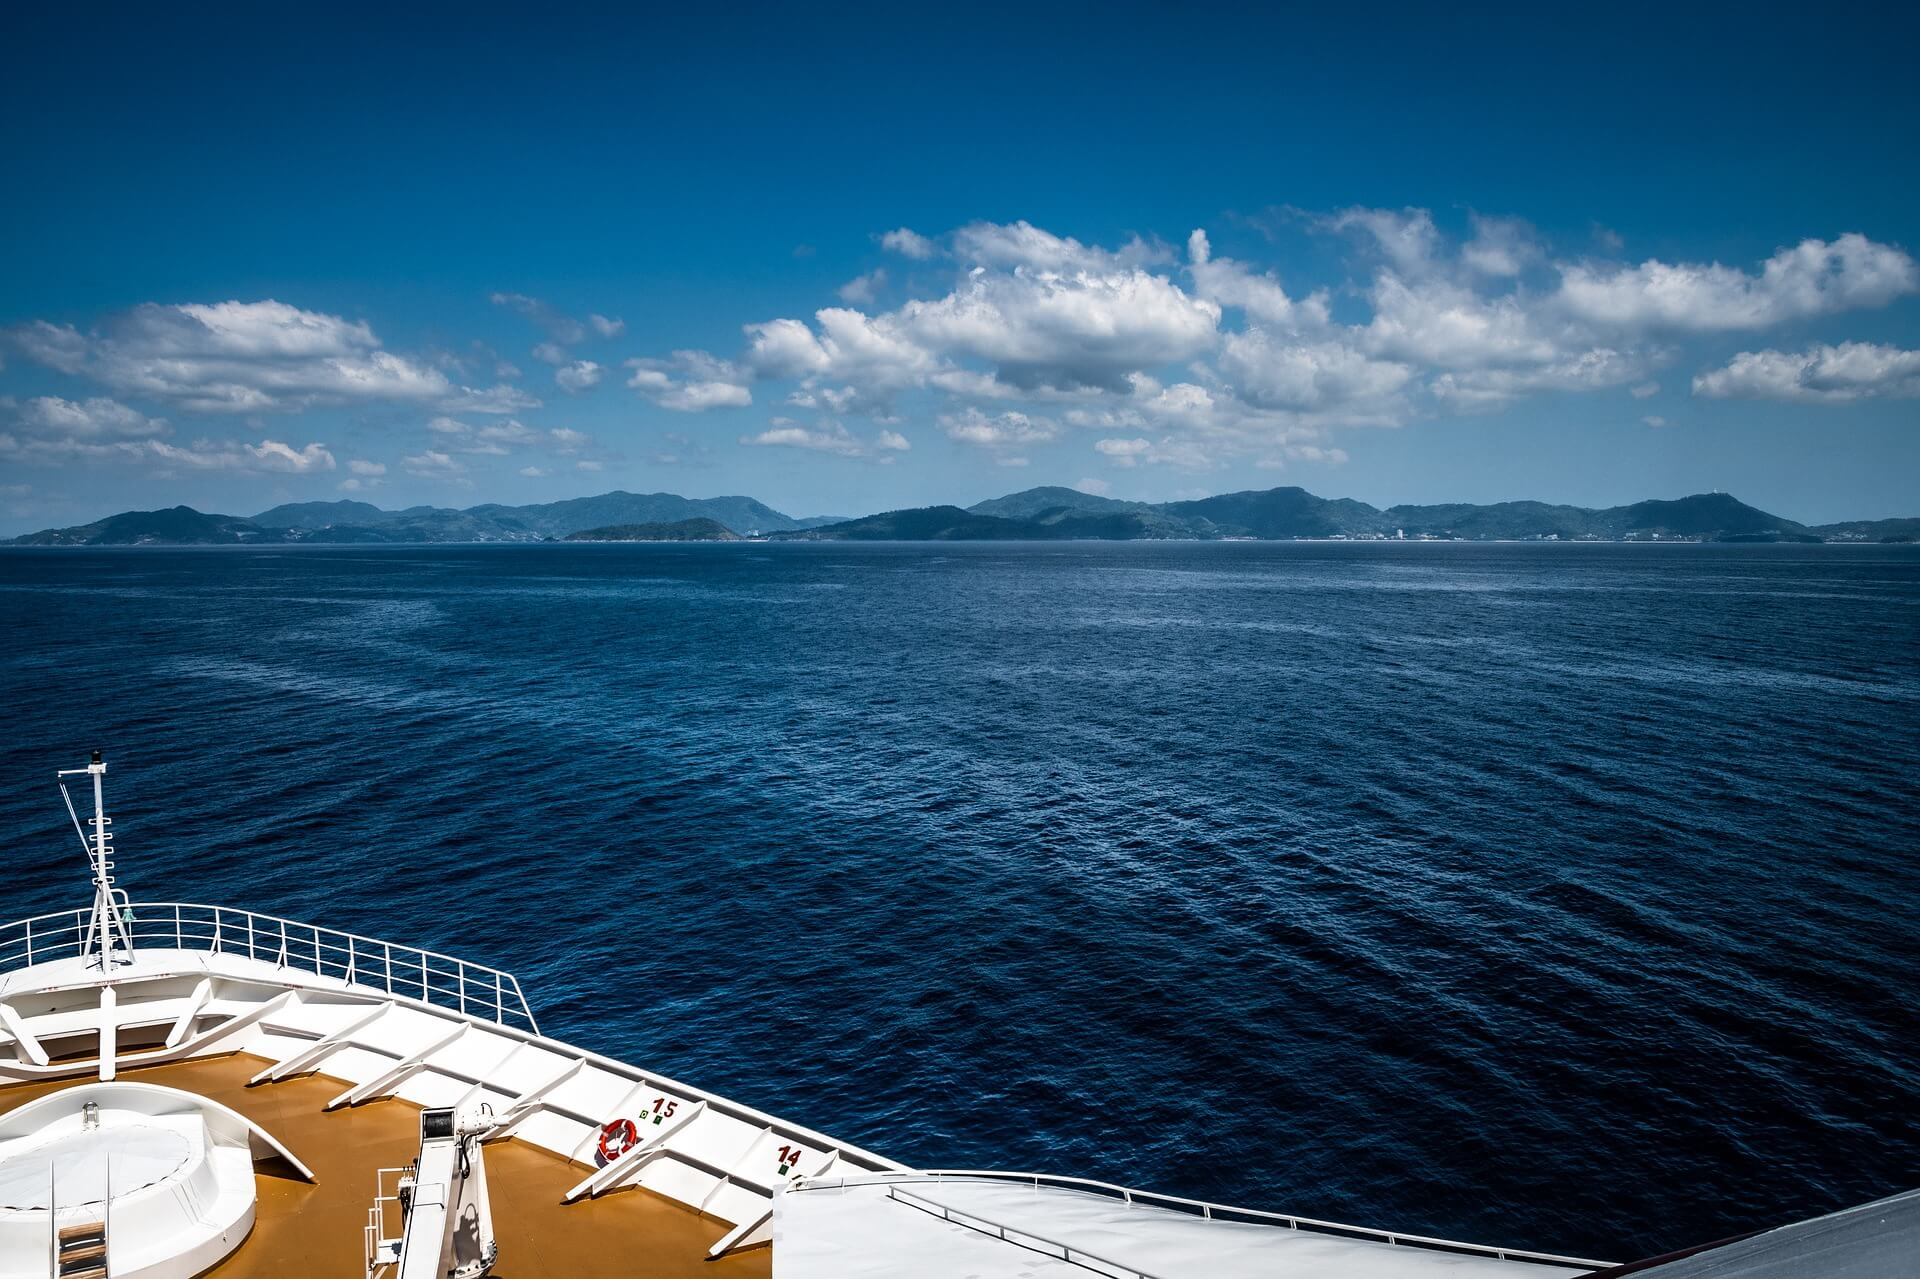 10 Things To Pack For Your Caribbean Cruise